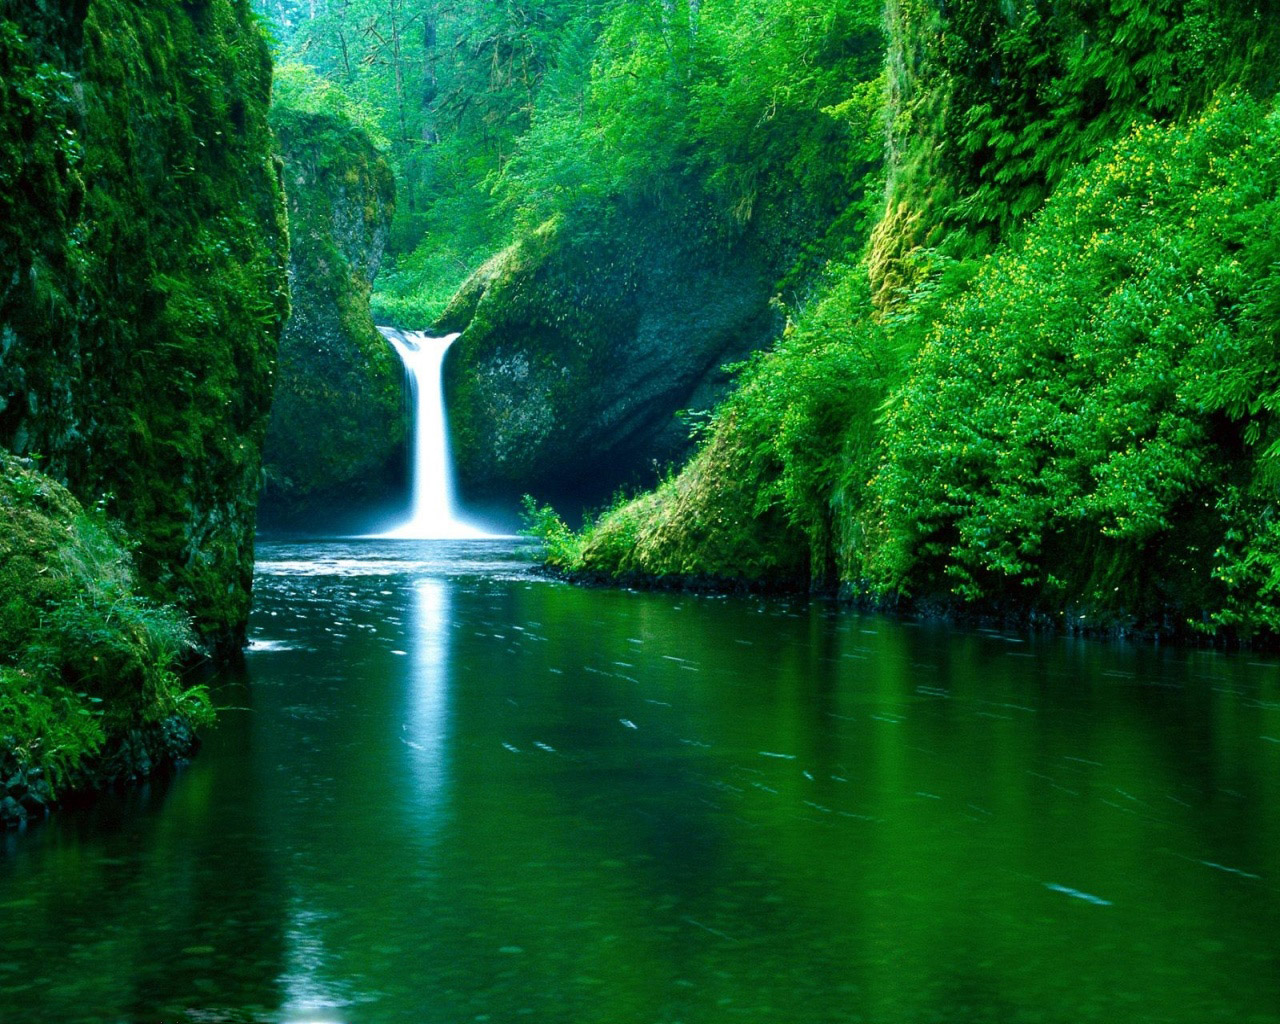 nature wallpaper nature wallpaper desktop nature wallpaper nature 1280x1024